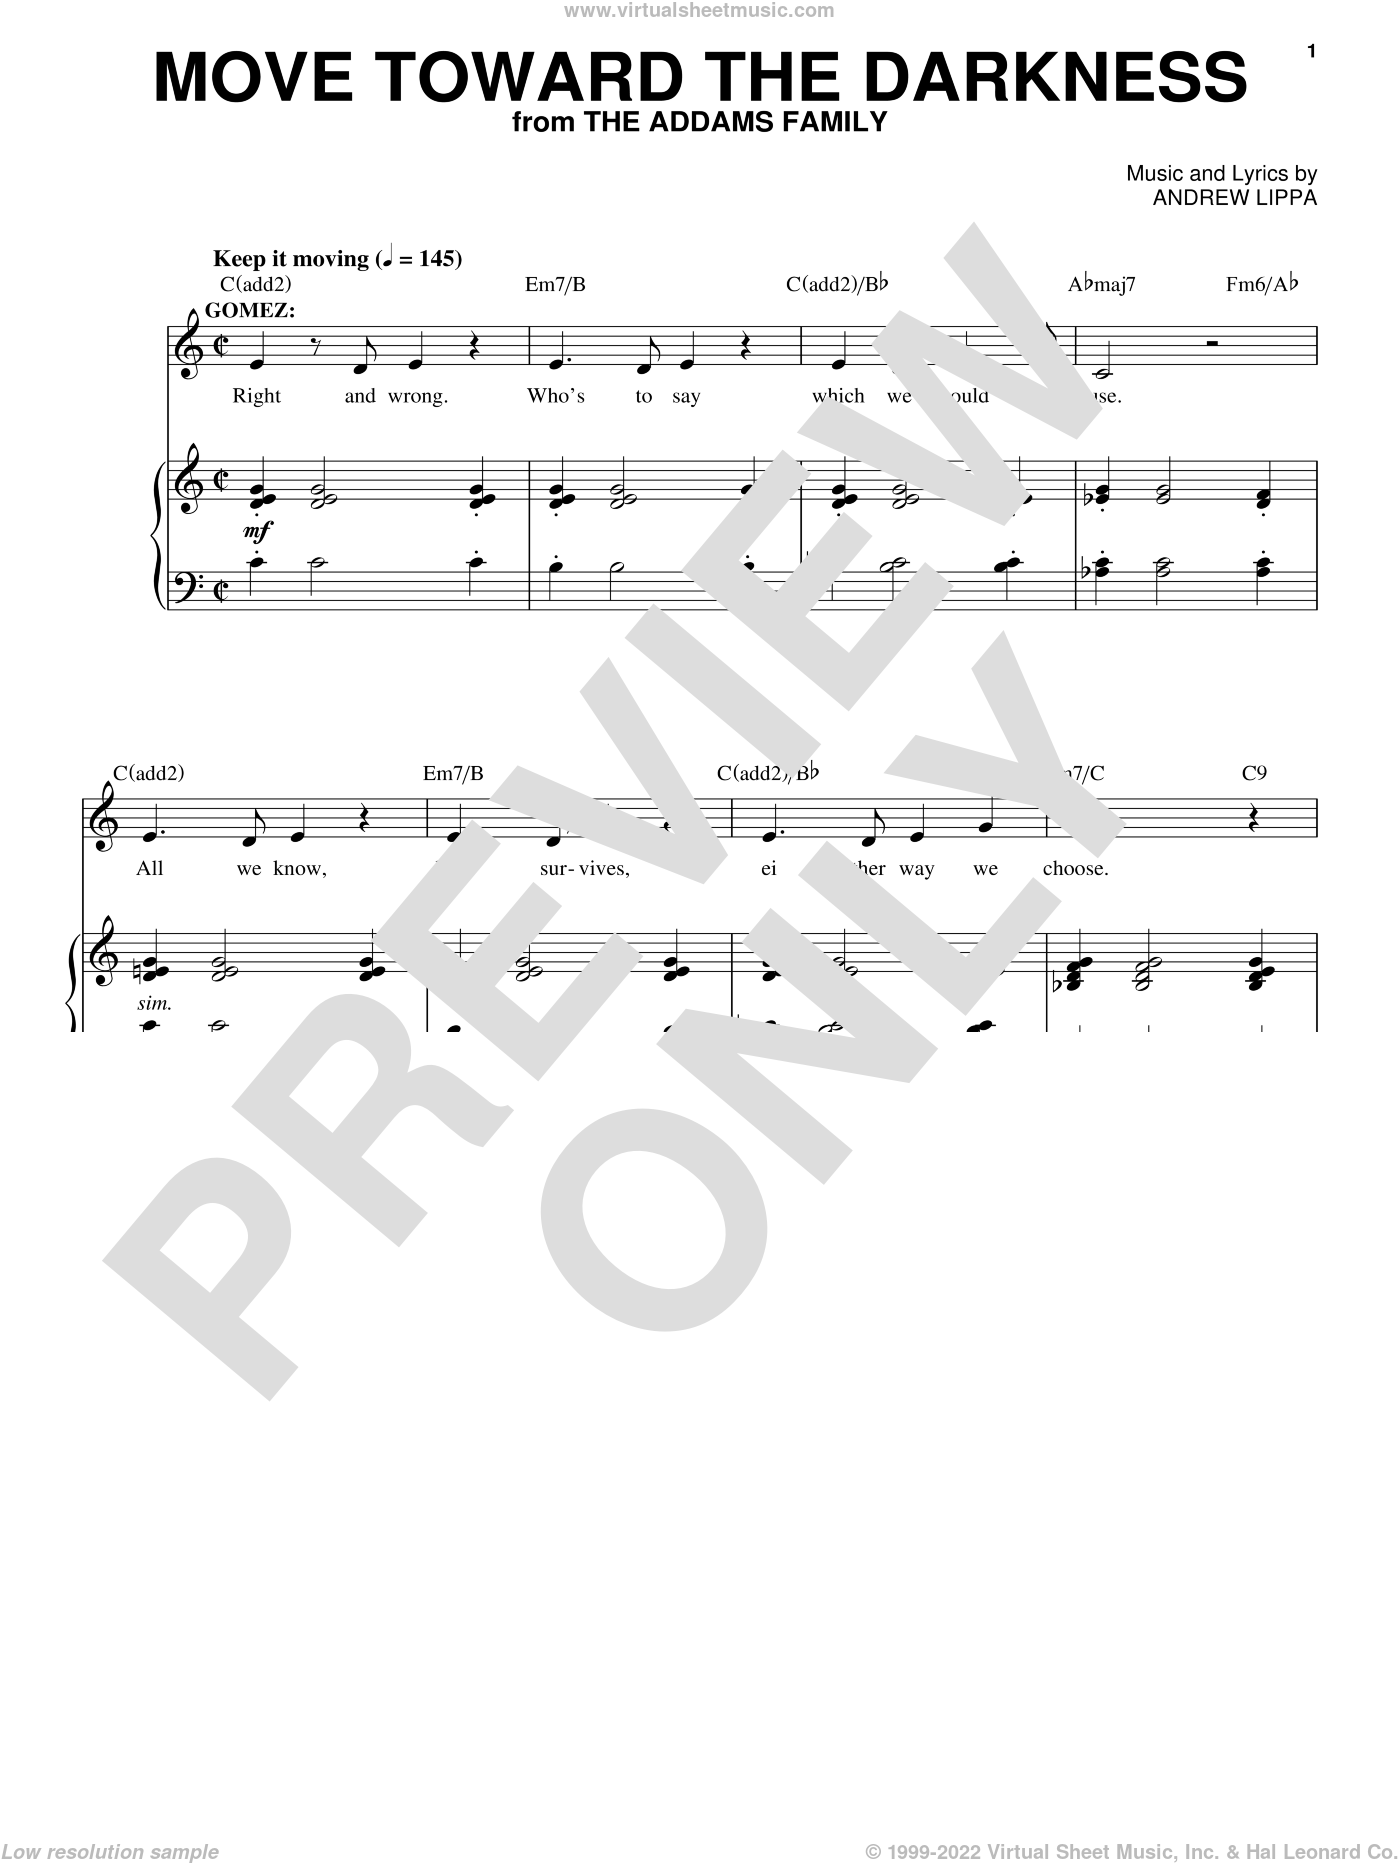 Move Toward The Darkness sheet music for voice, piano or guitar by Andrew Lippa, intermediate skill level